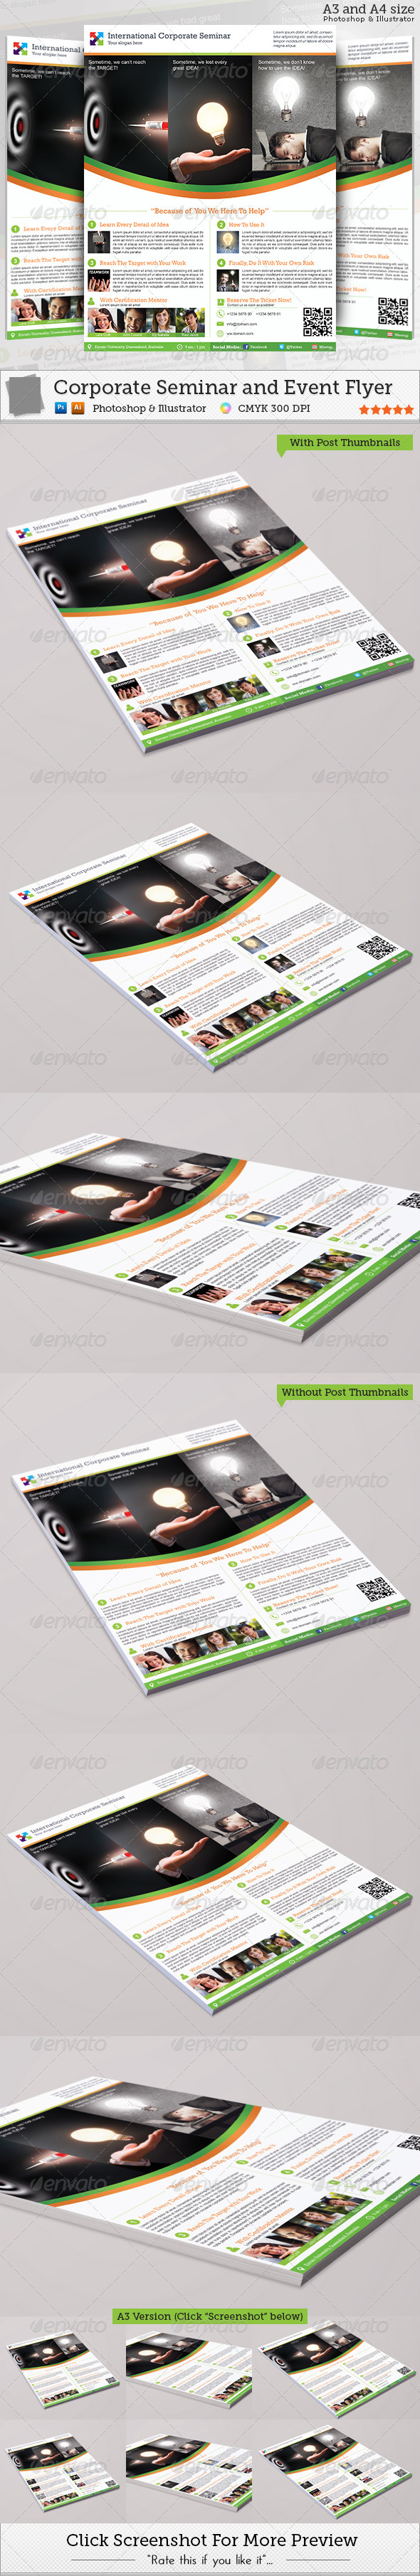 Corporate Seminar and Event Flyer - Corporate Flyers